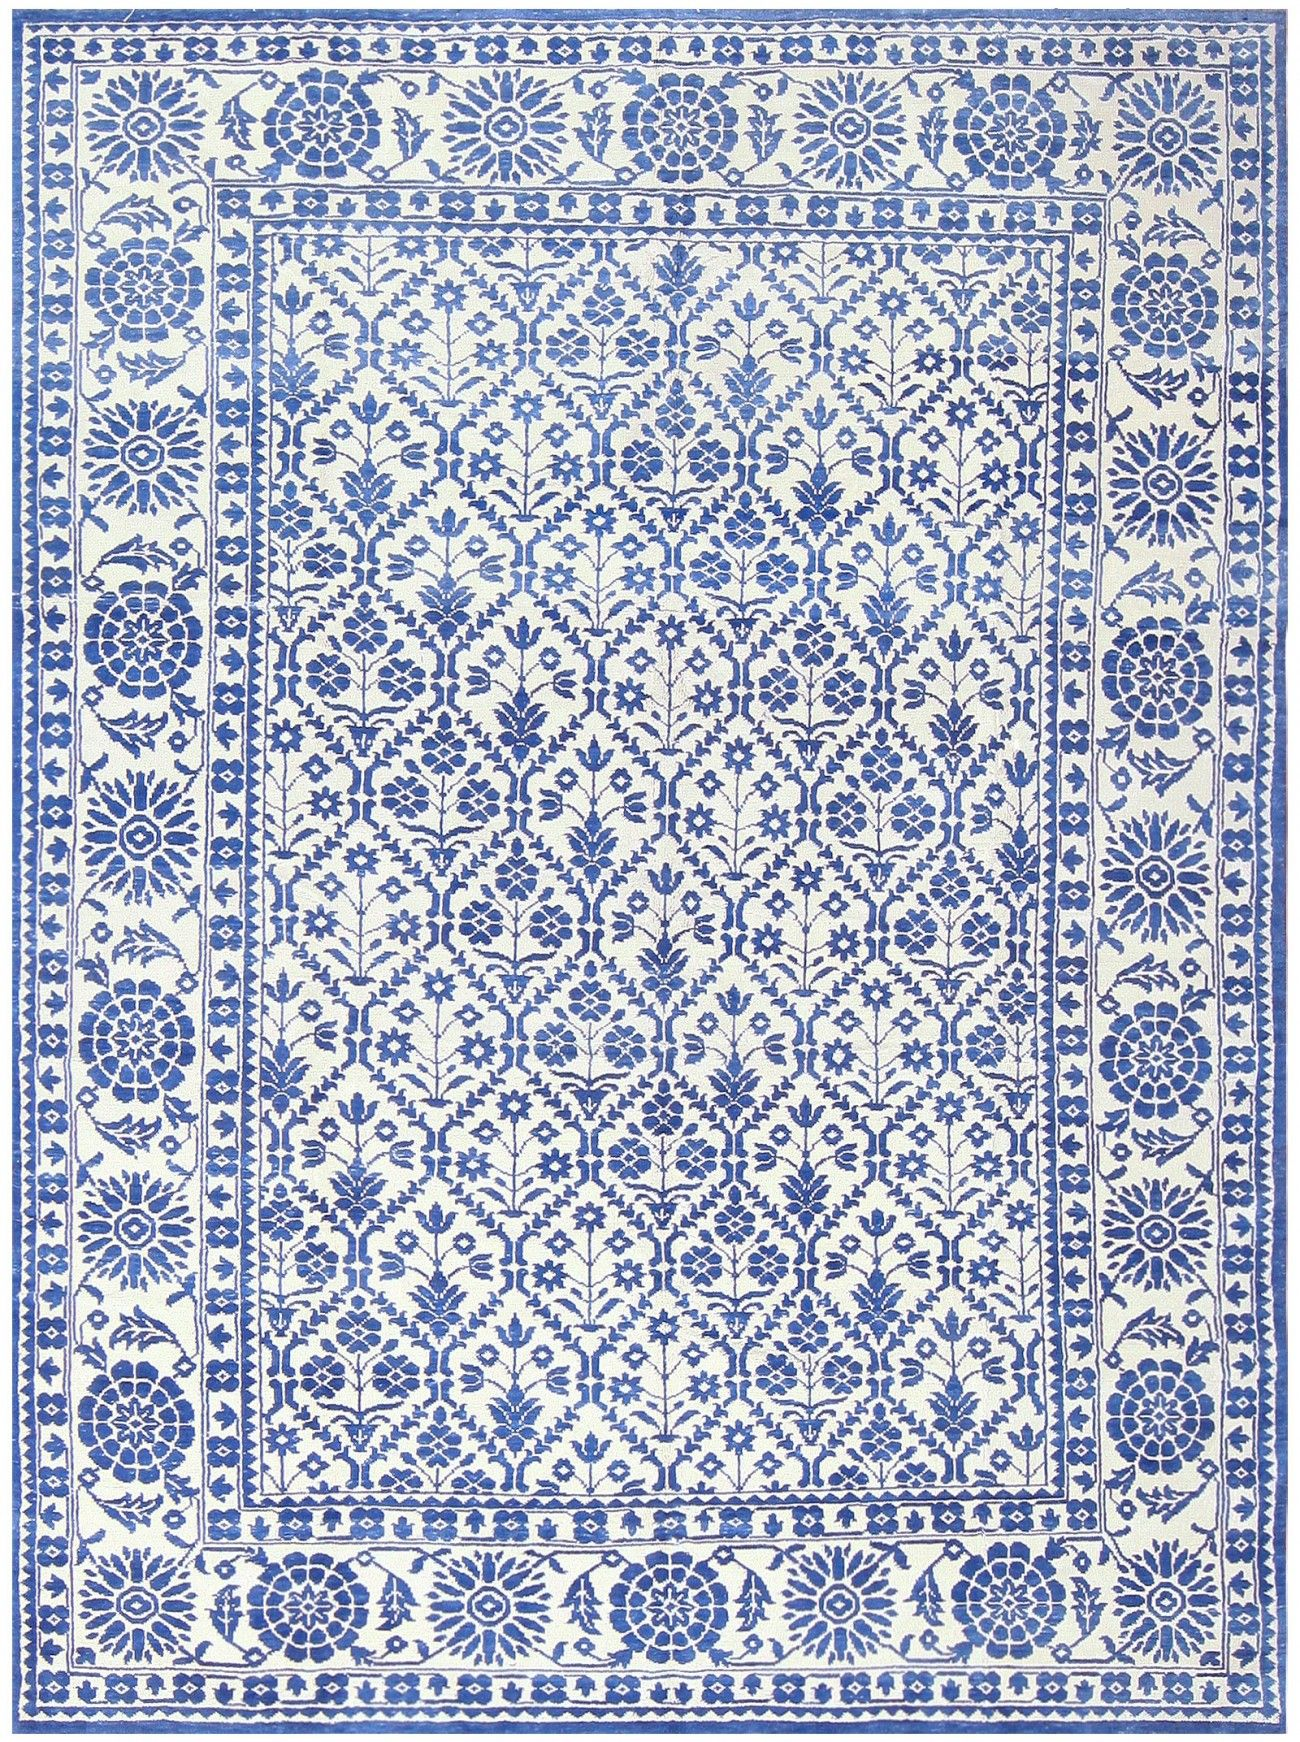 Charming Blue And White Vintage Indian Agra Cotton Rug 48300 Main Image By Nazmiyal